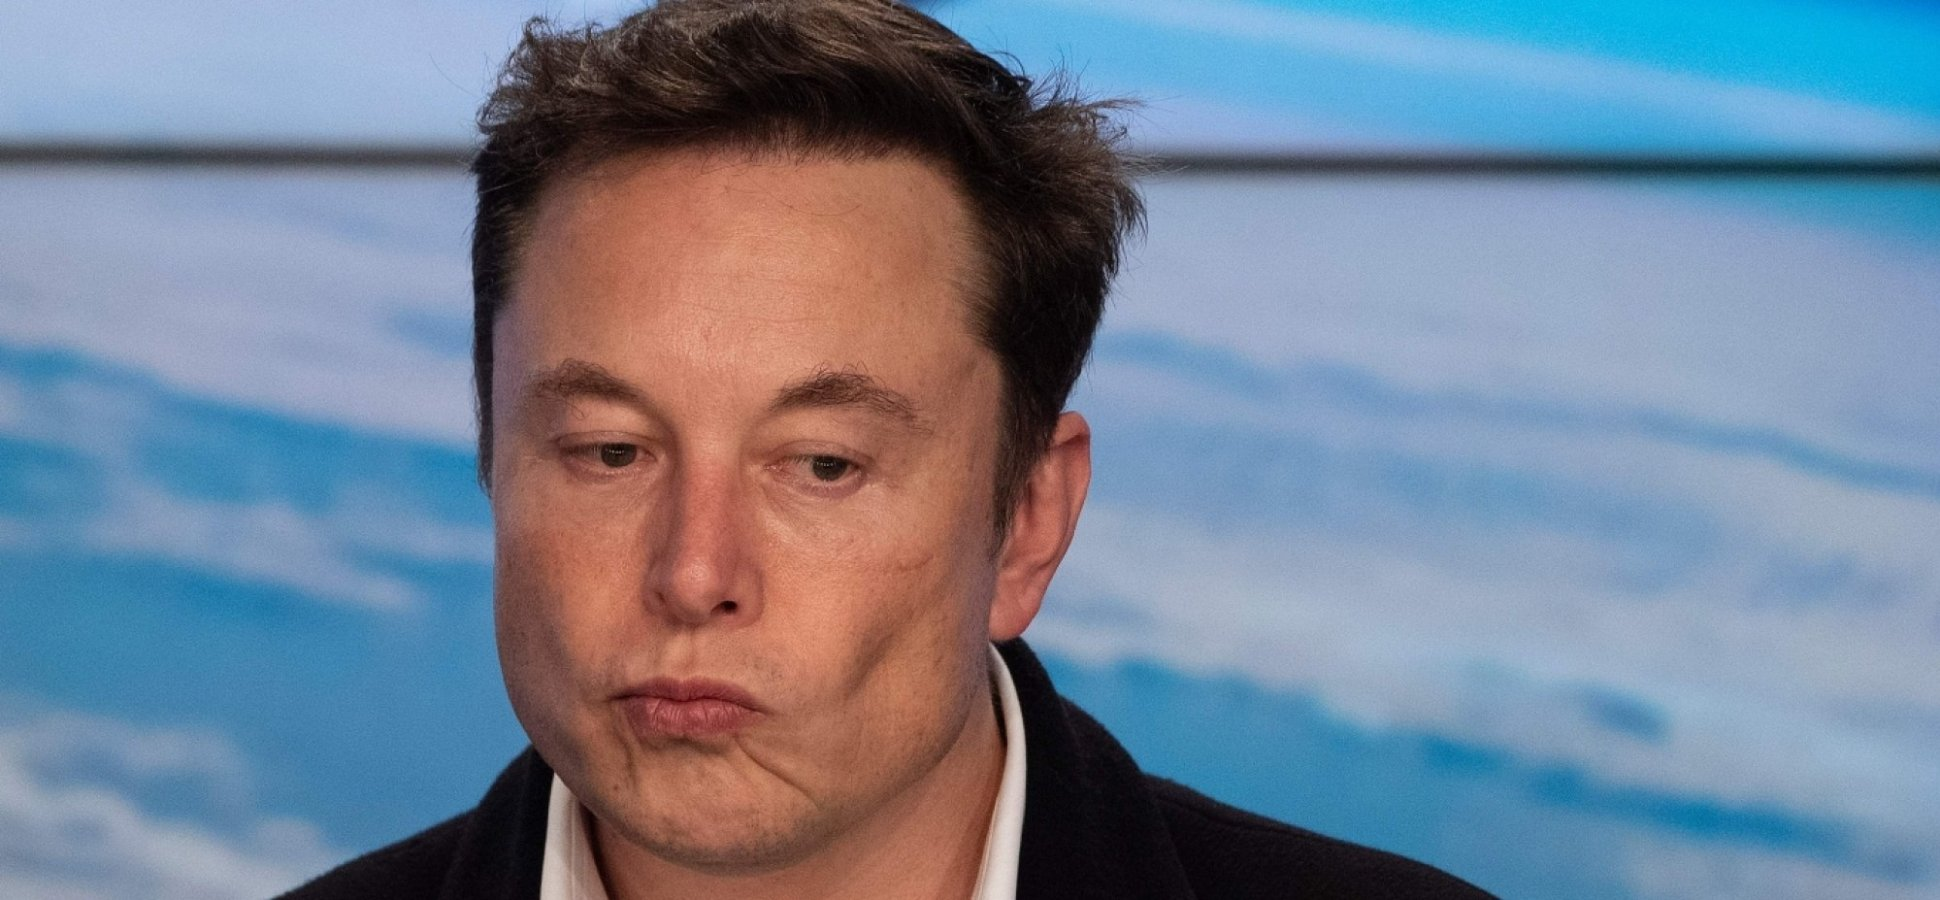 Yes, Marijuana Might Make Elon Musk More Creative but Read this Entire Post Before Lighting Up